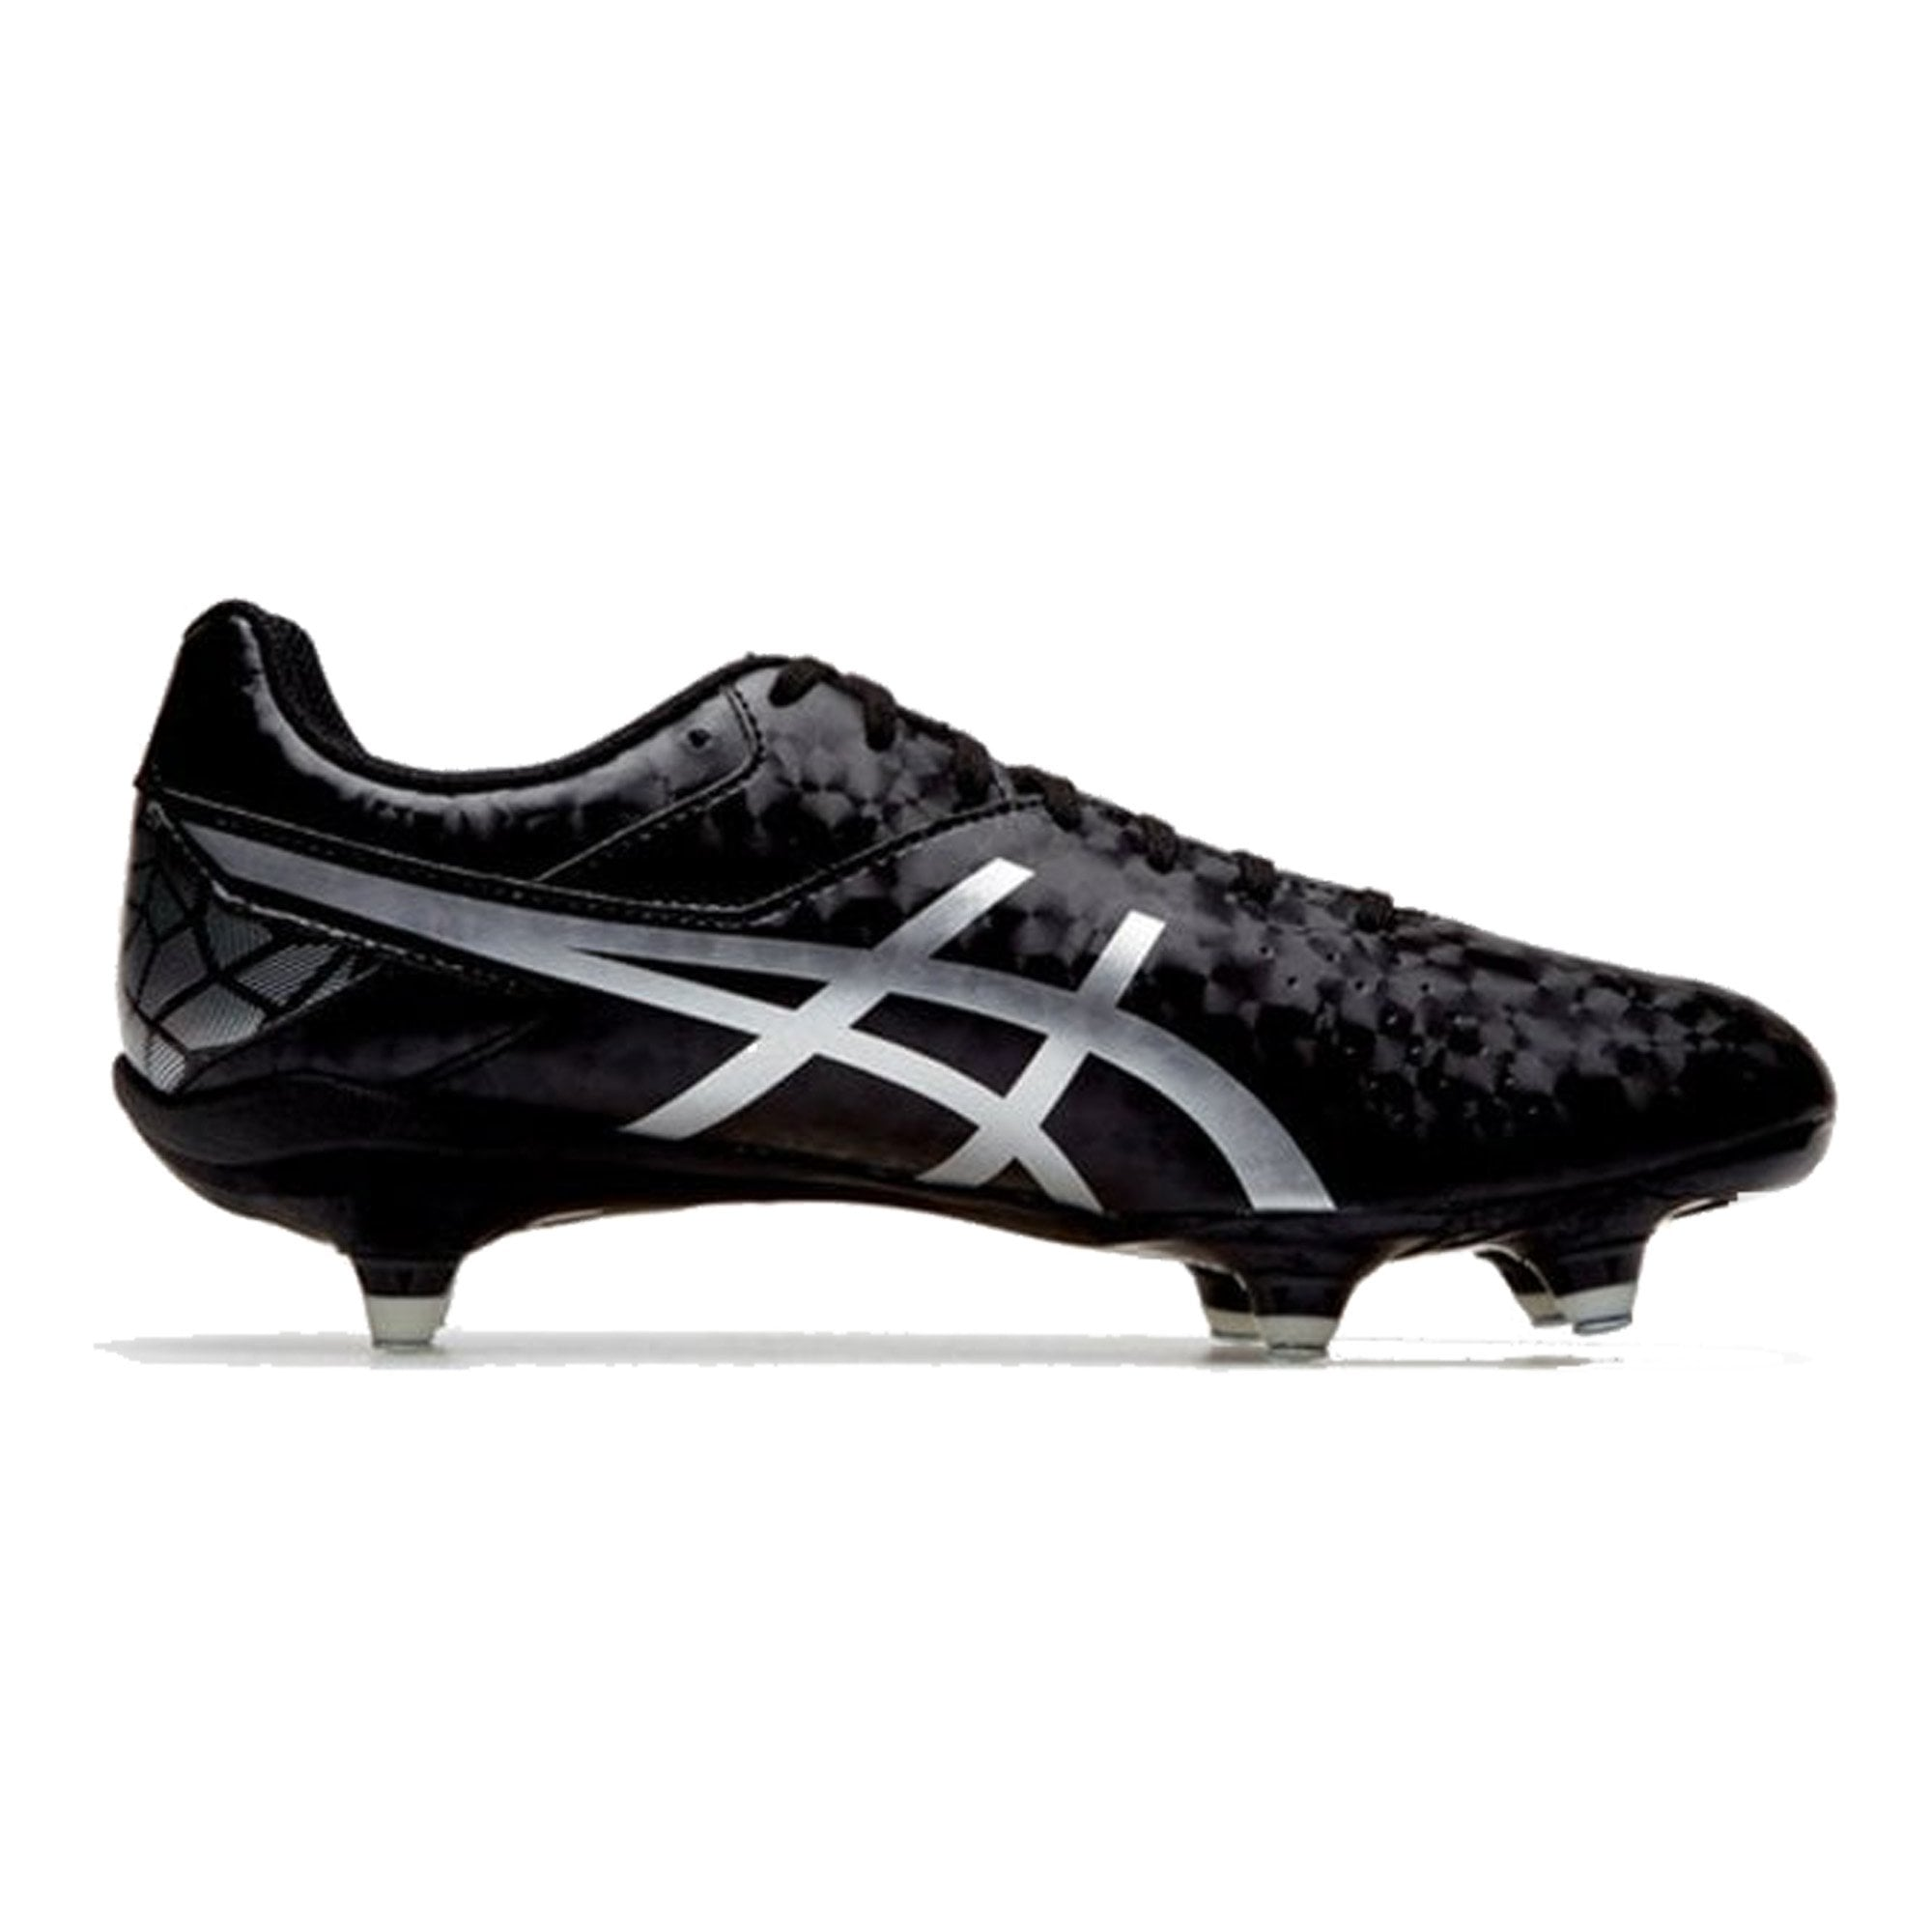 gel lethal speed sg rugby boots